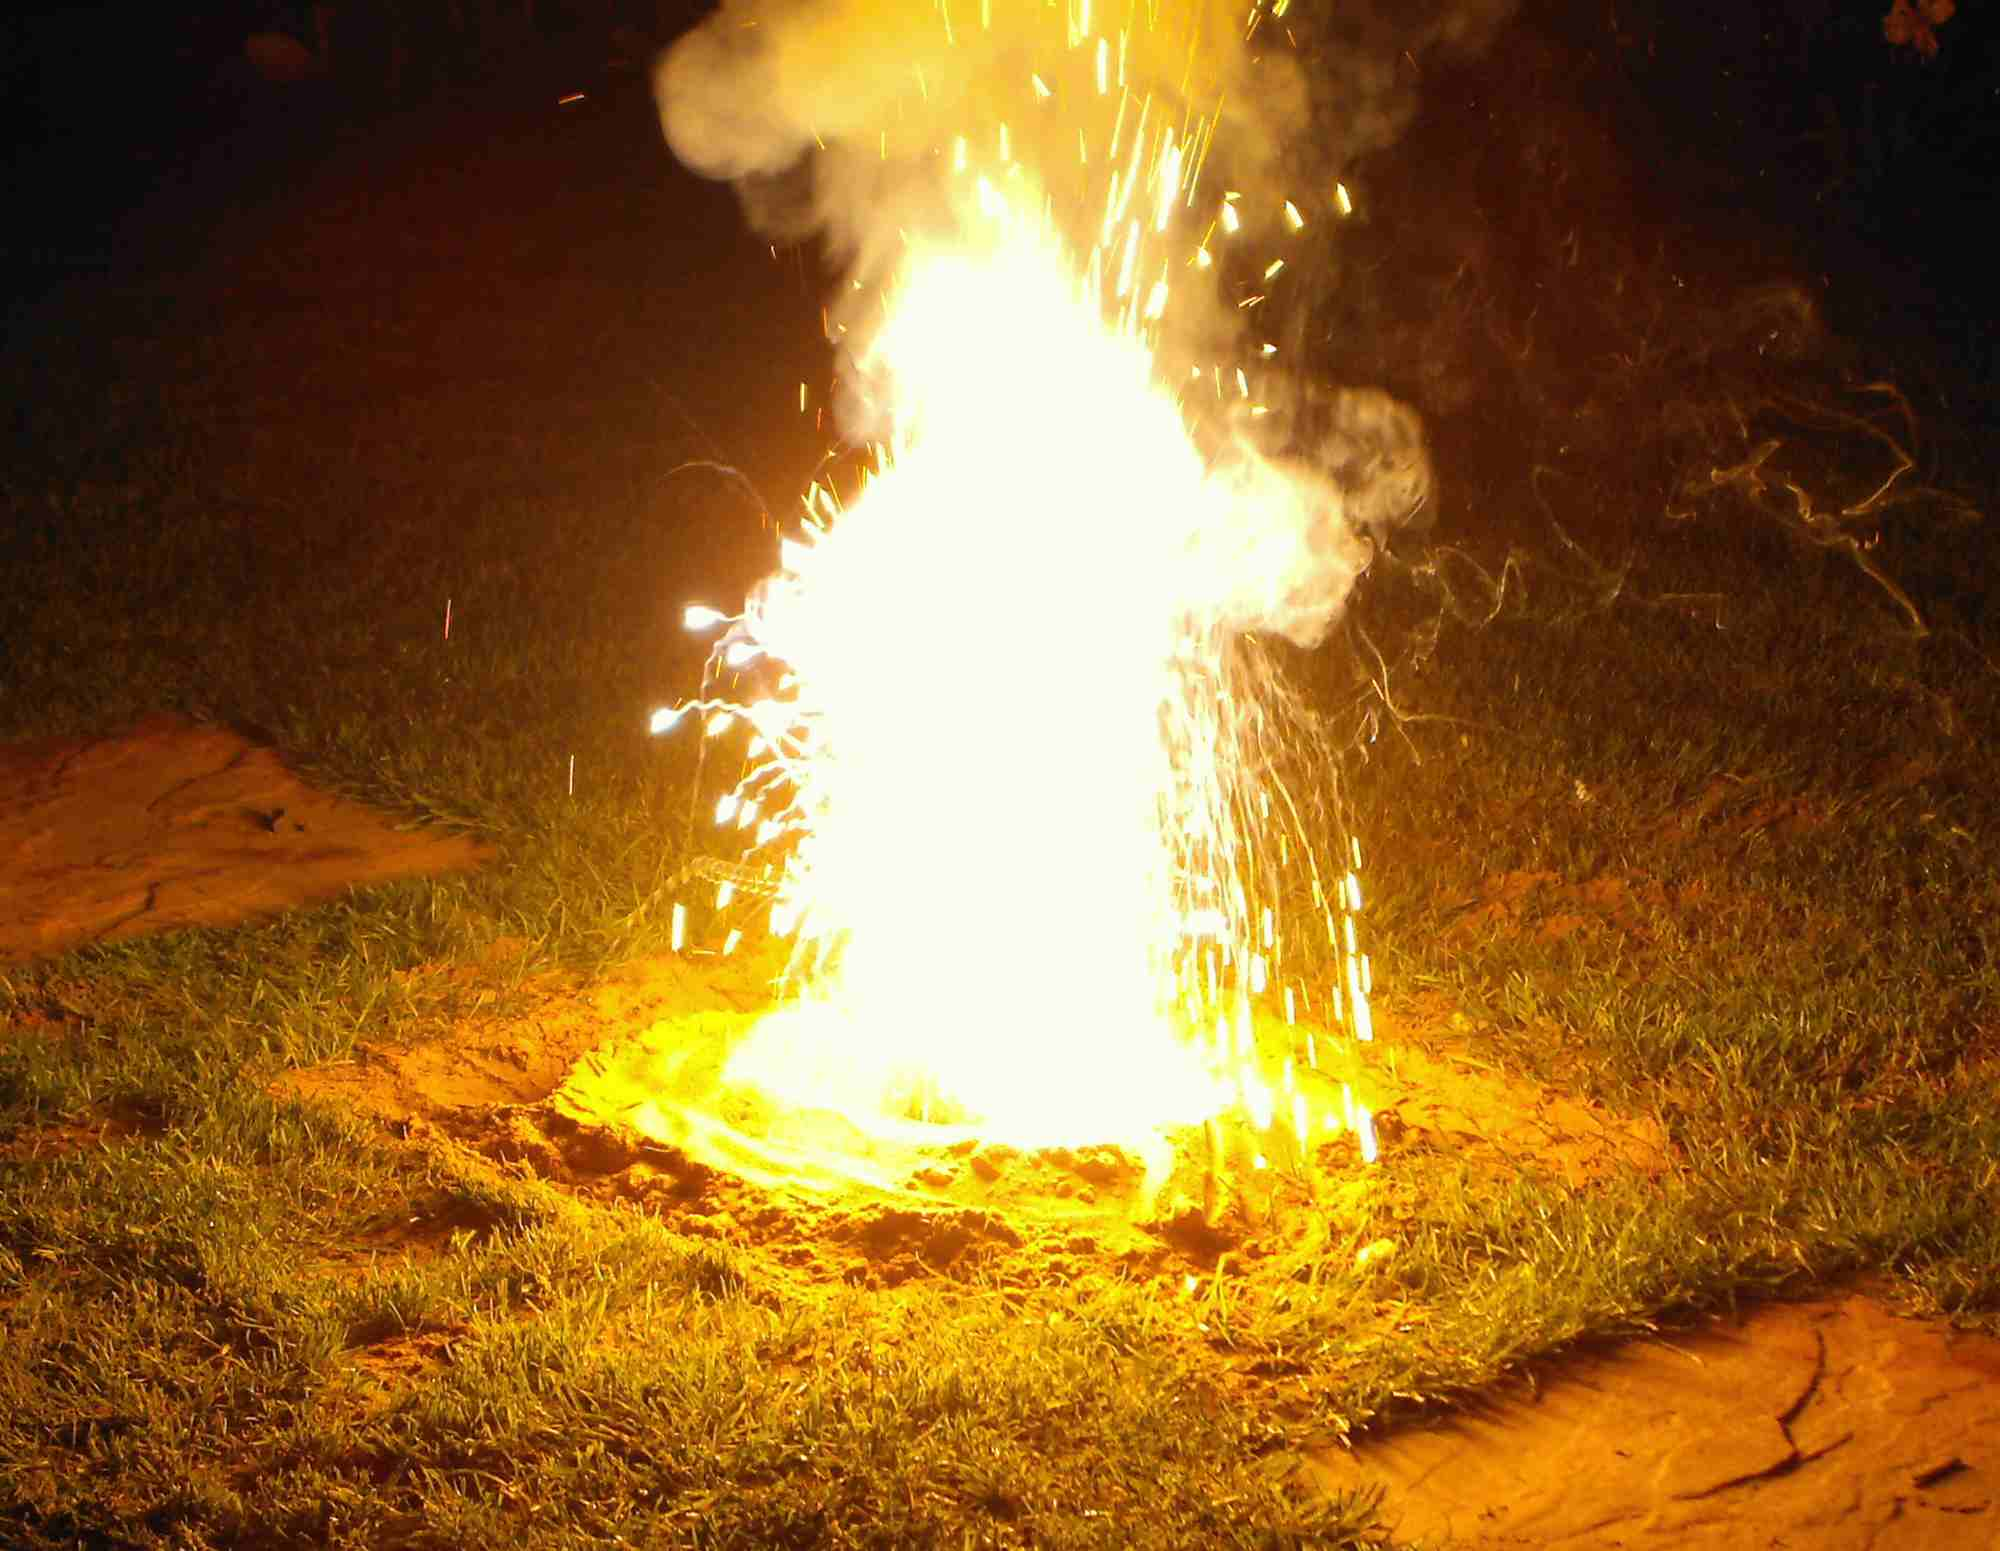 Thermite burning on grass